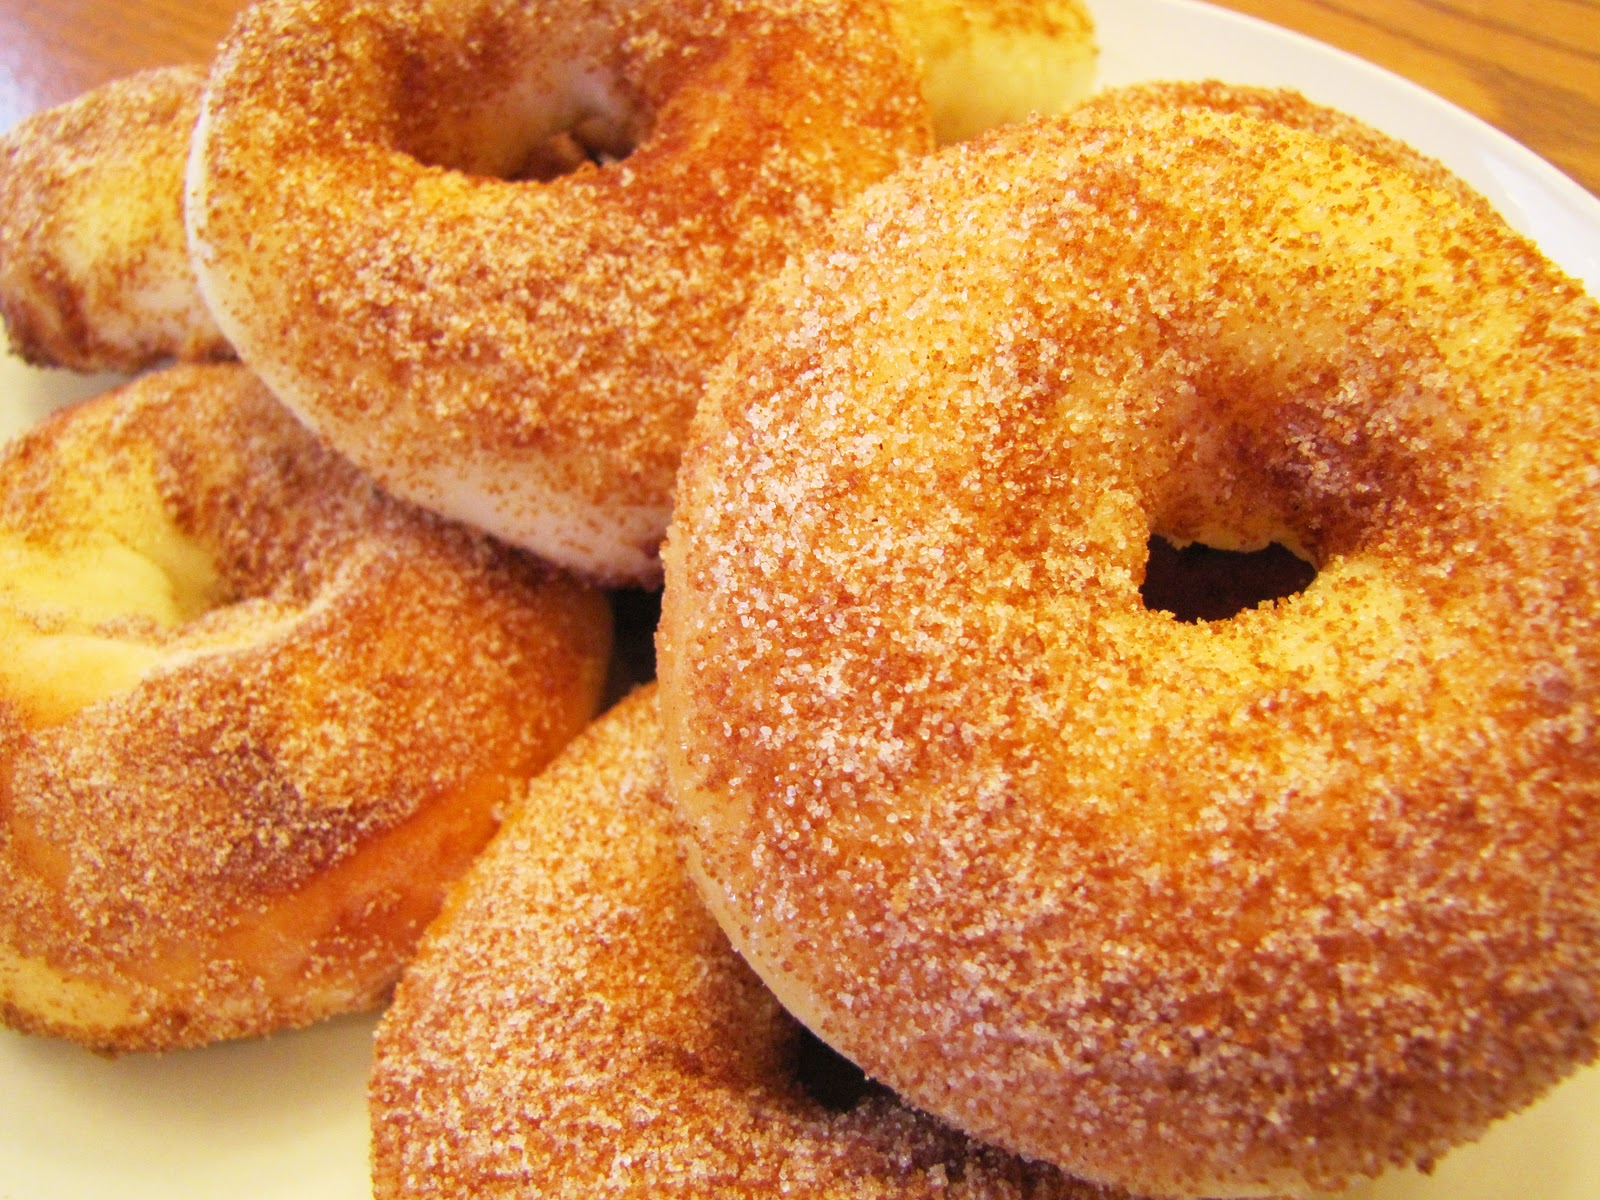 Cake Donut Recipe Without Yeast